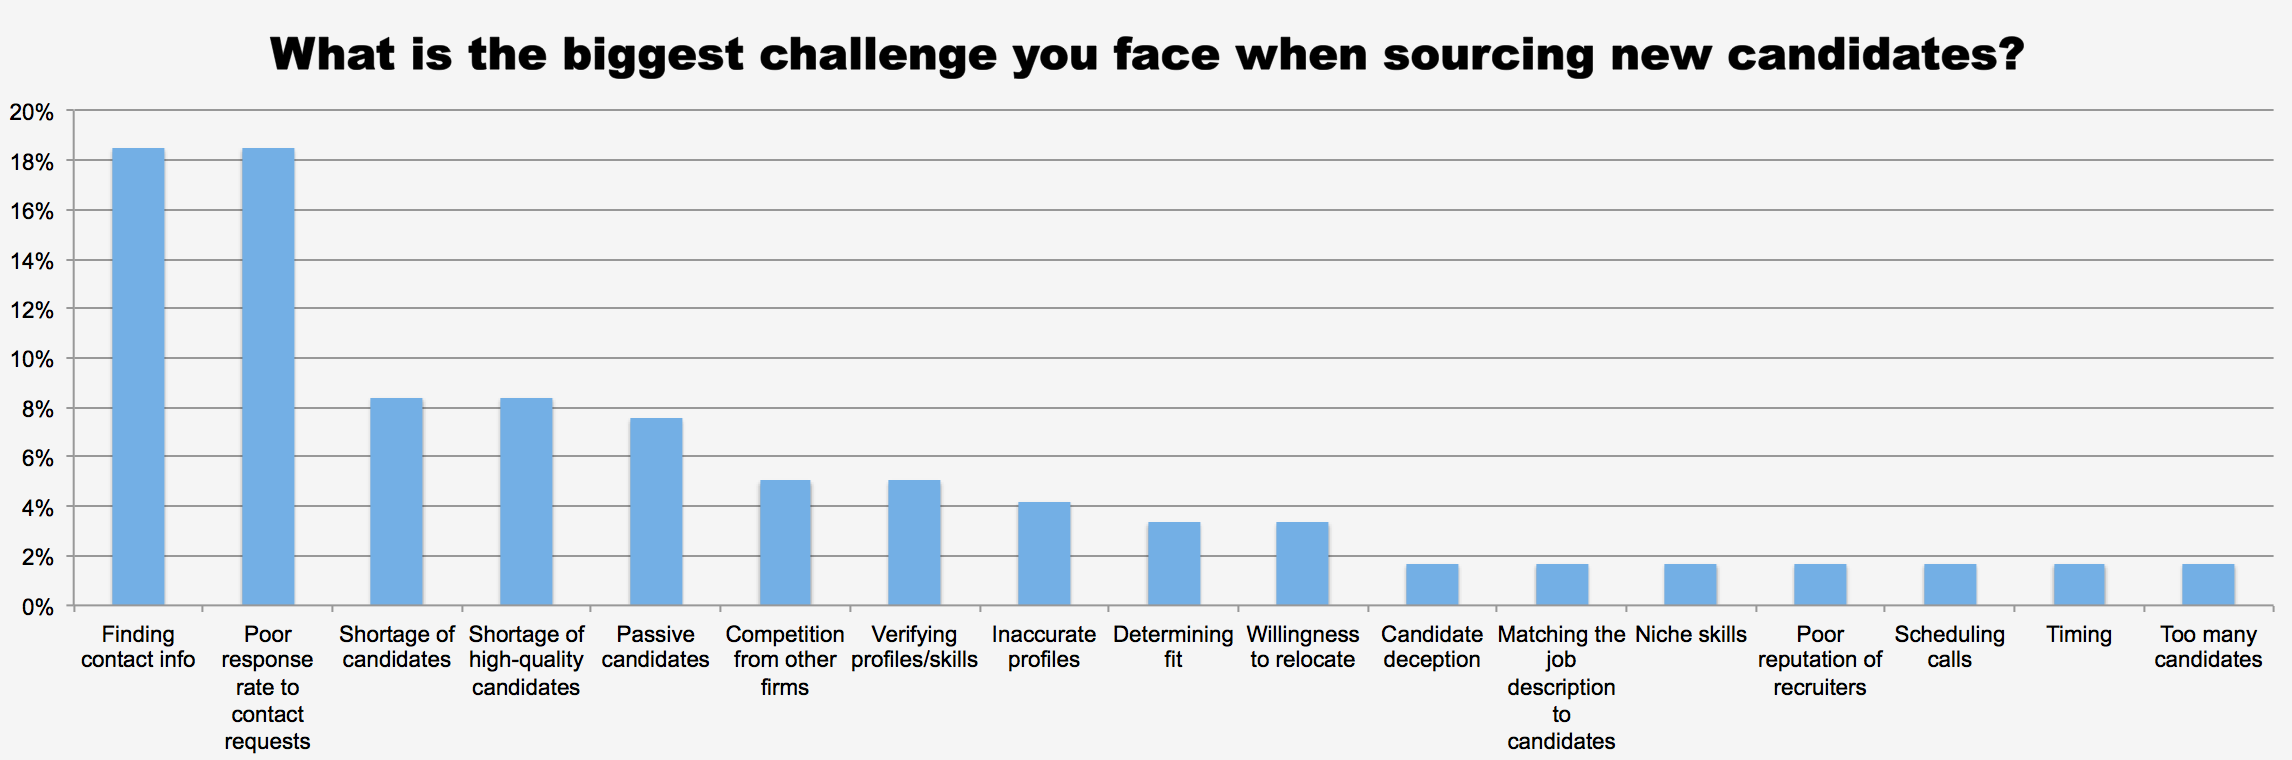 What is the biggest challenge you face when sourcing new candidates?